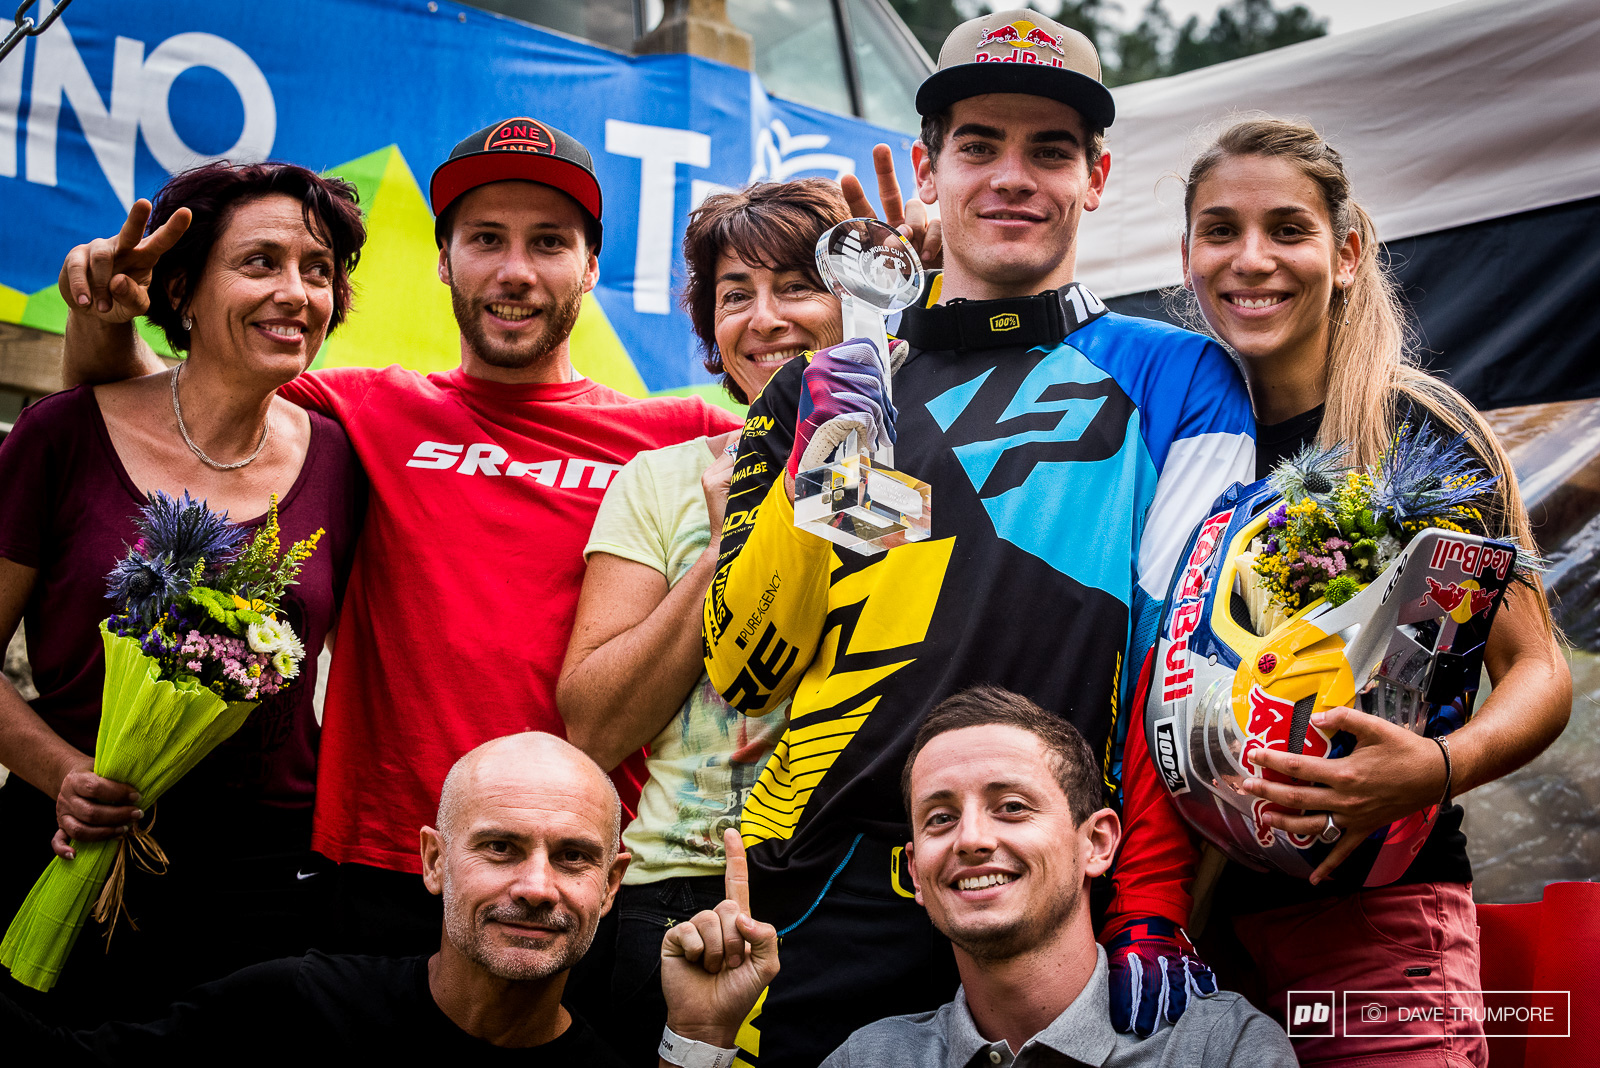 Friends and family celebrate in Val di Sole following World Cup finals.